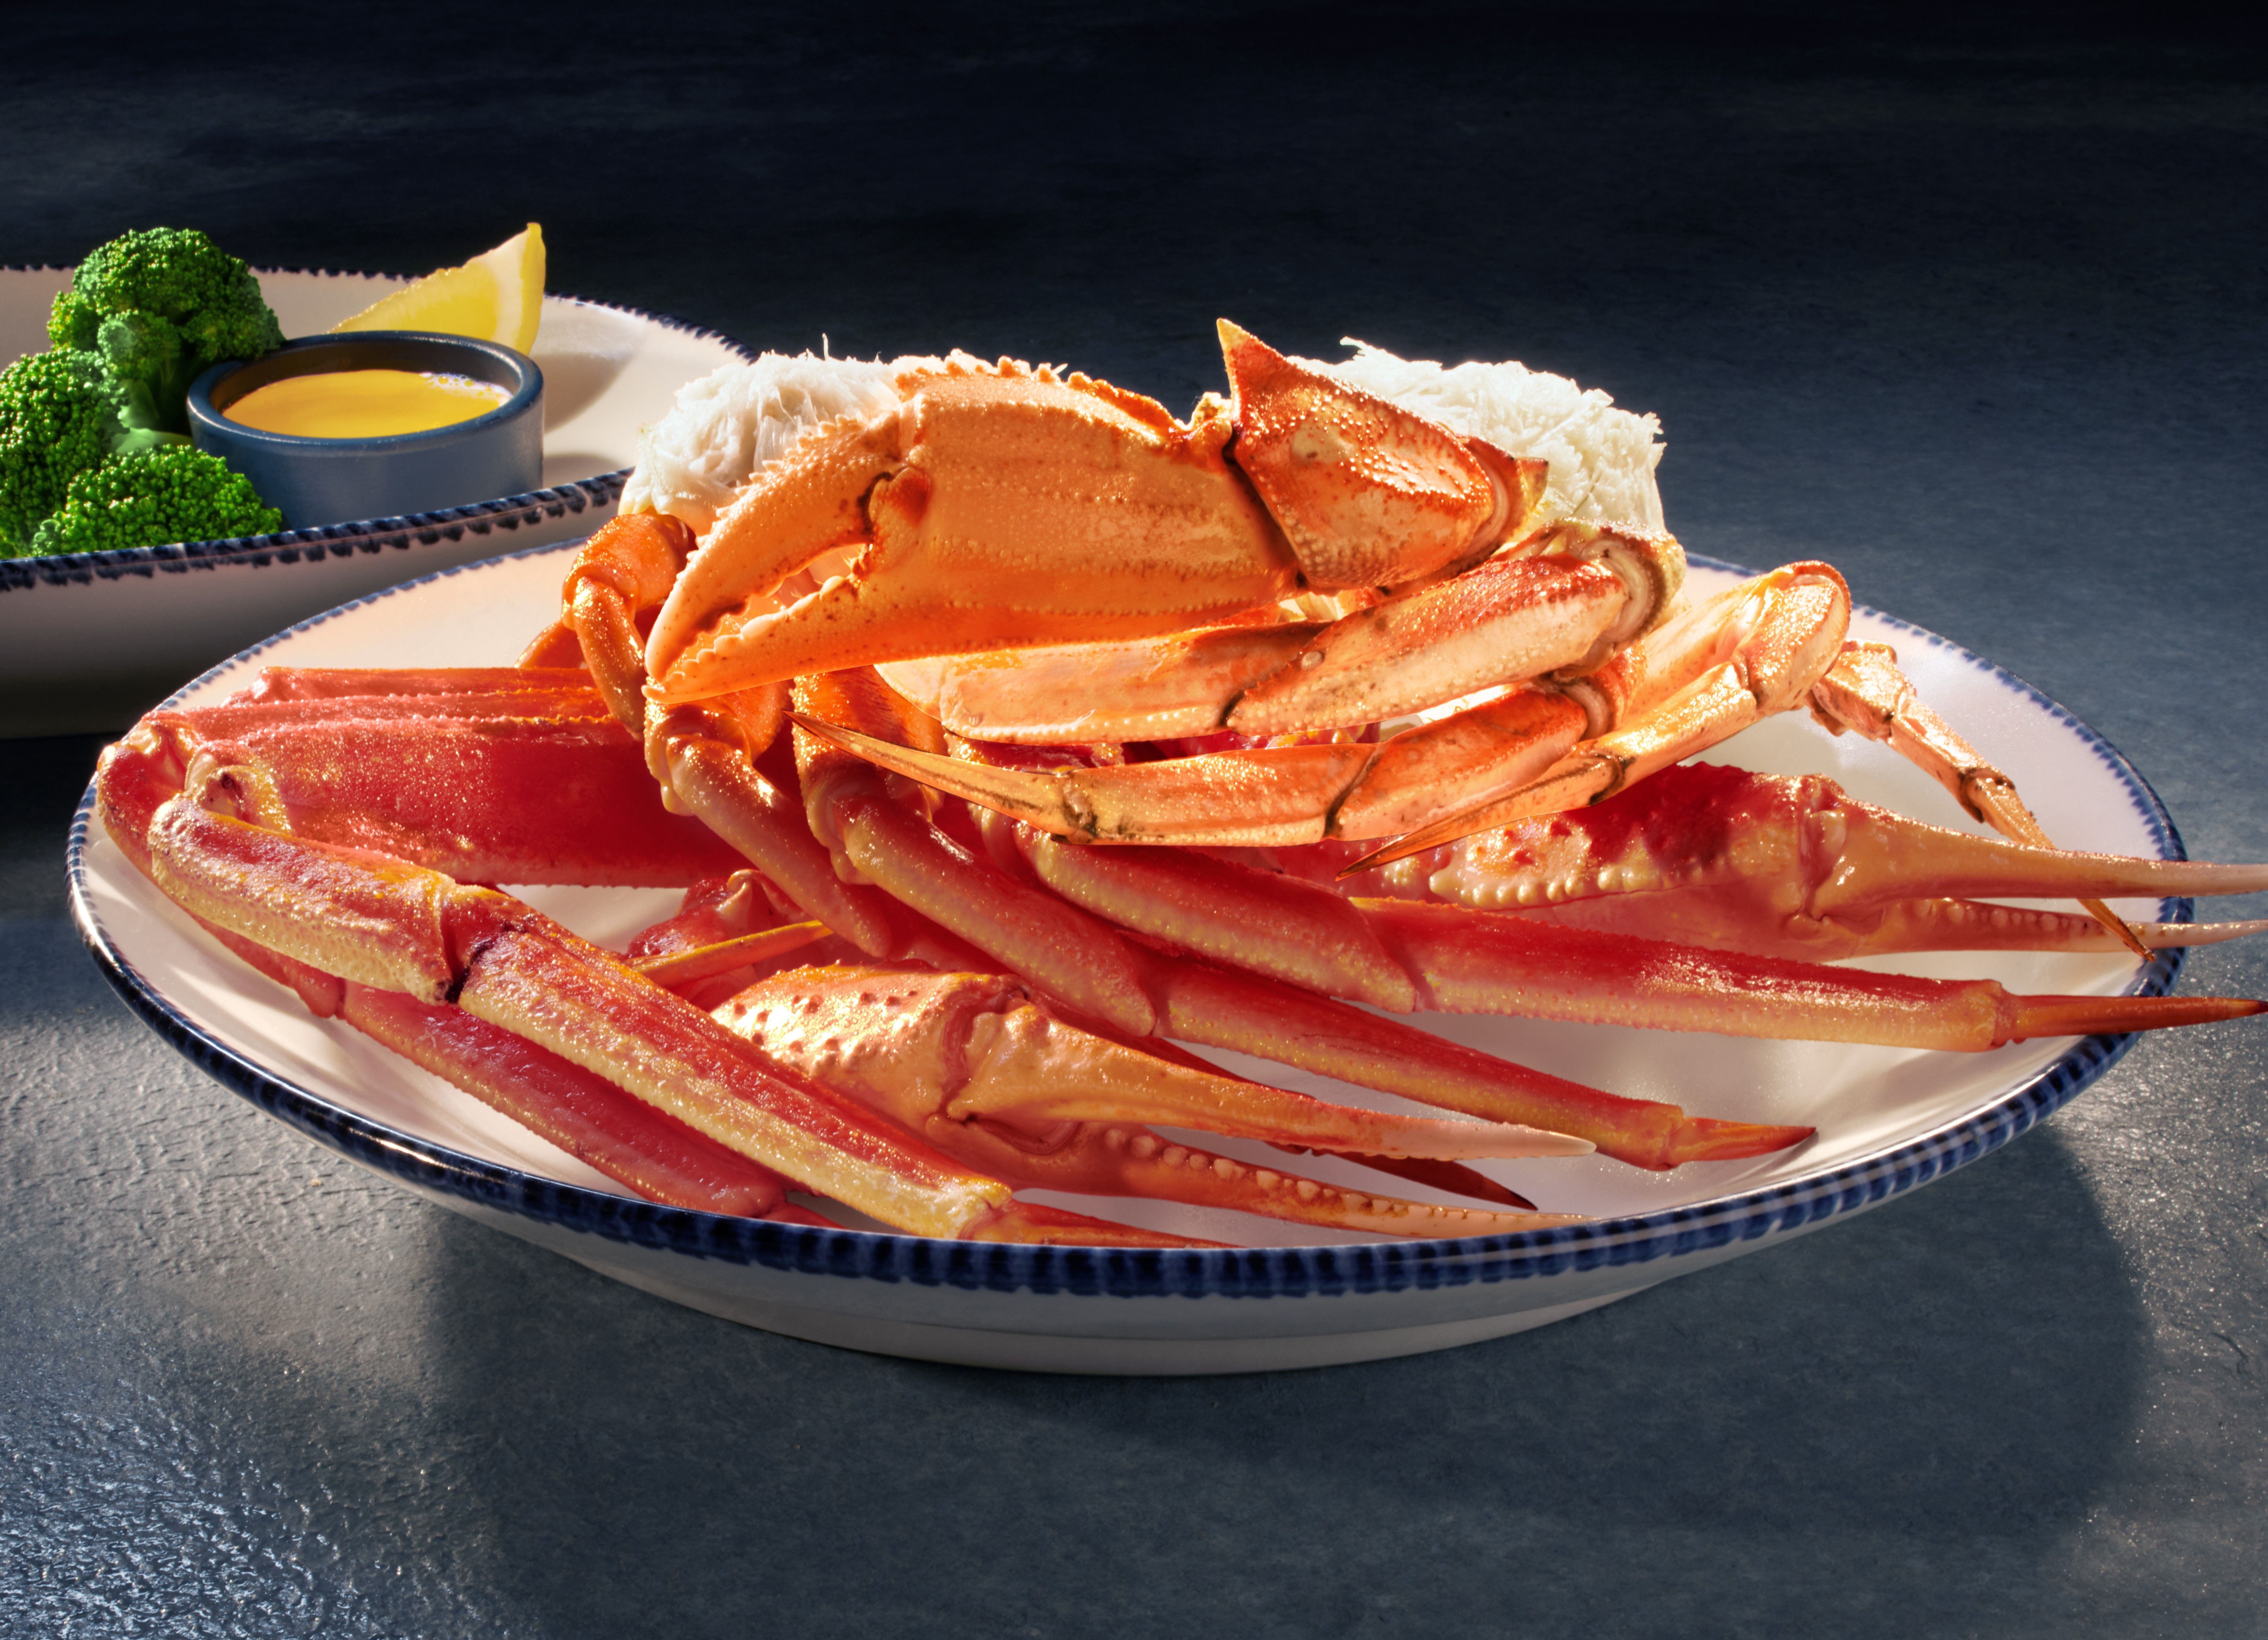 Crabfest Is Back At Red Lobster And It's Actually A Pretty Great Deal